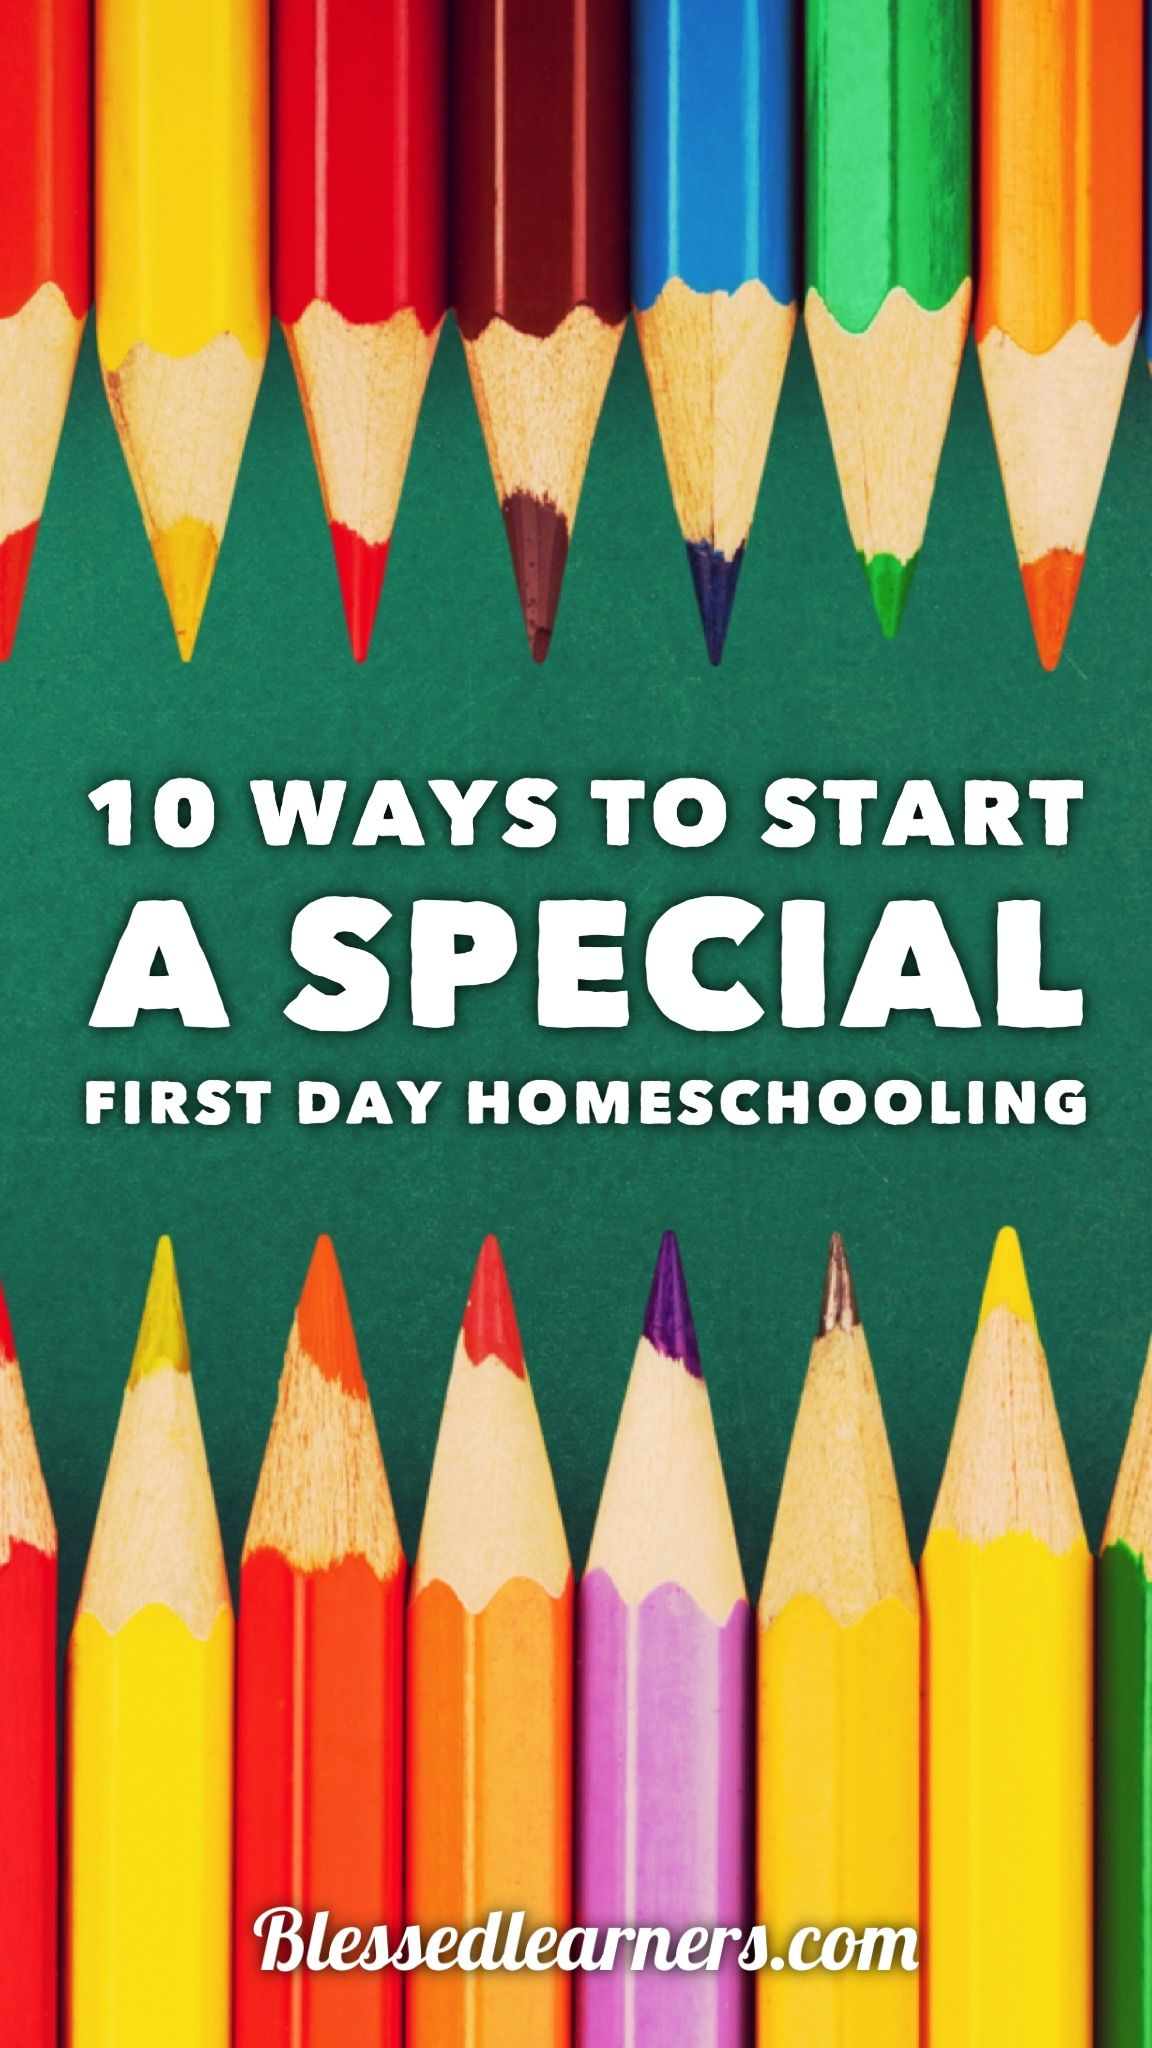 10 Ways To Make A Special First Day Of Homeschooling